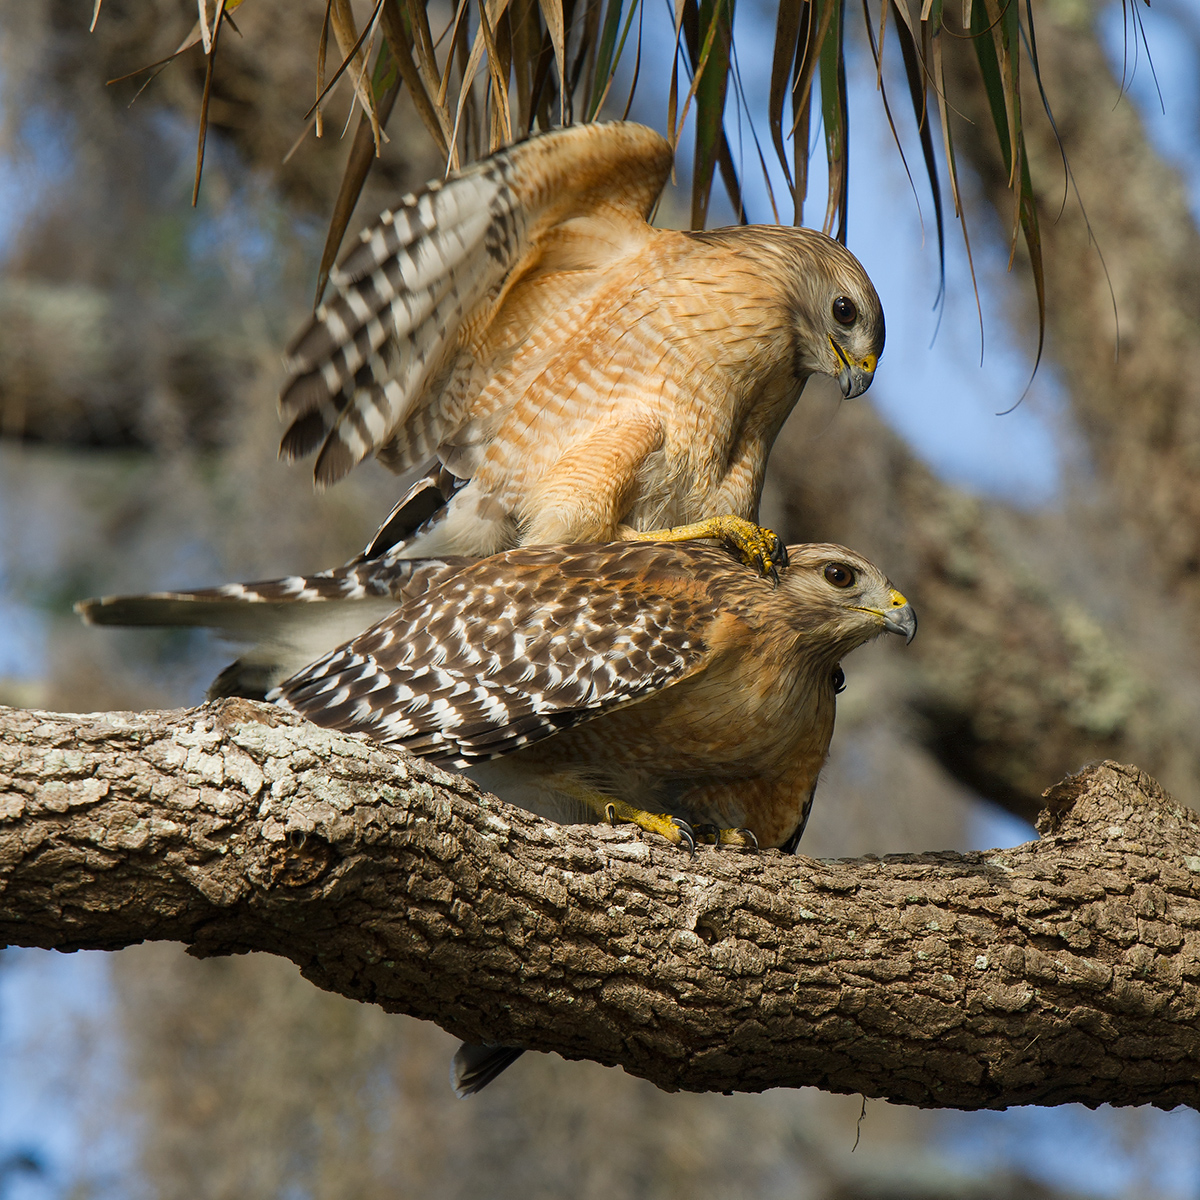 Red-shouldered Hawk Buteo lineatus, © Craig Brelsford (craigbrelsford.com, shanghaibirding.com). 27 Jan. 2017. Gemini Springs Park. Debary, Florida, USA. Action in this photo occurred at 28.861771, -81.309276.